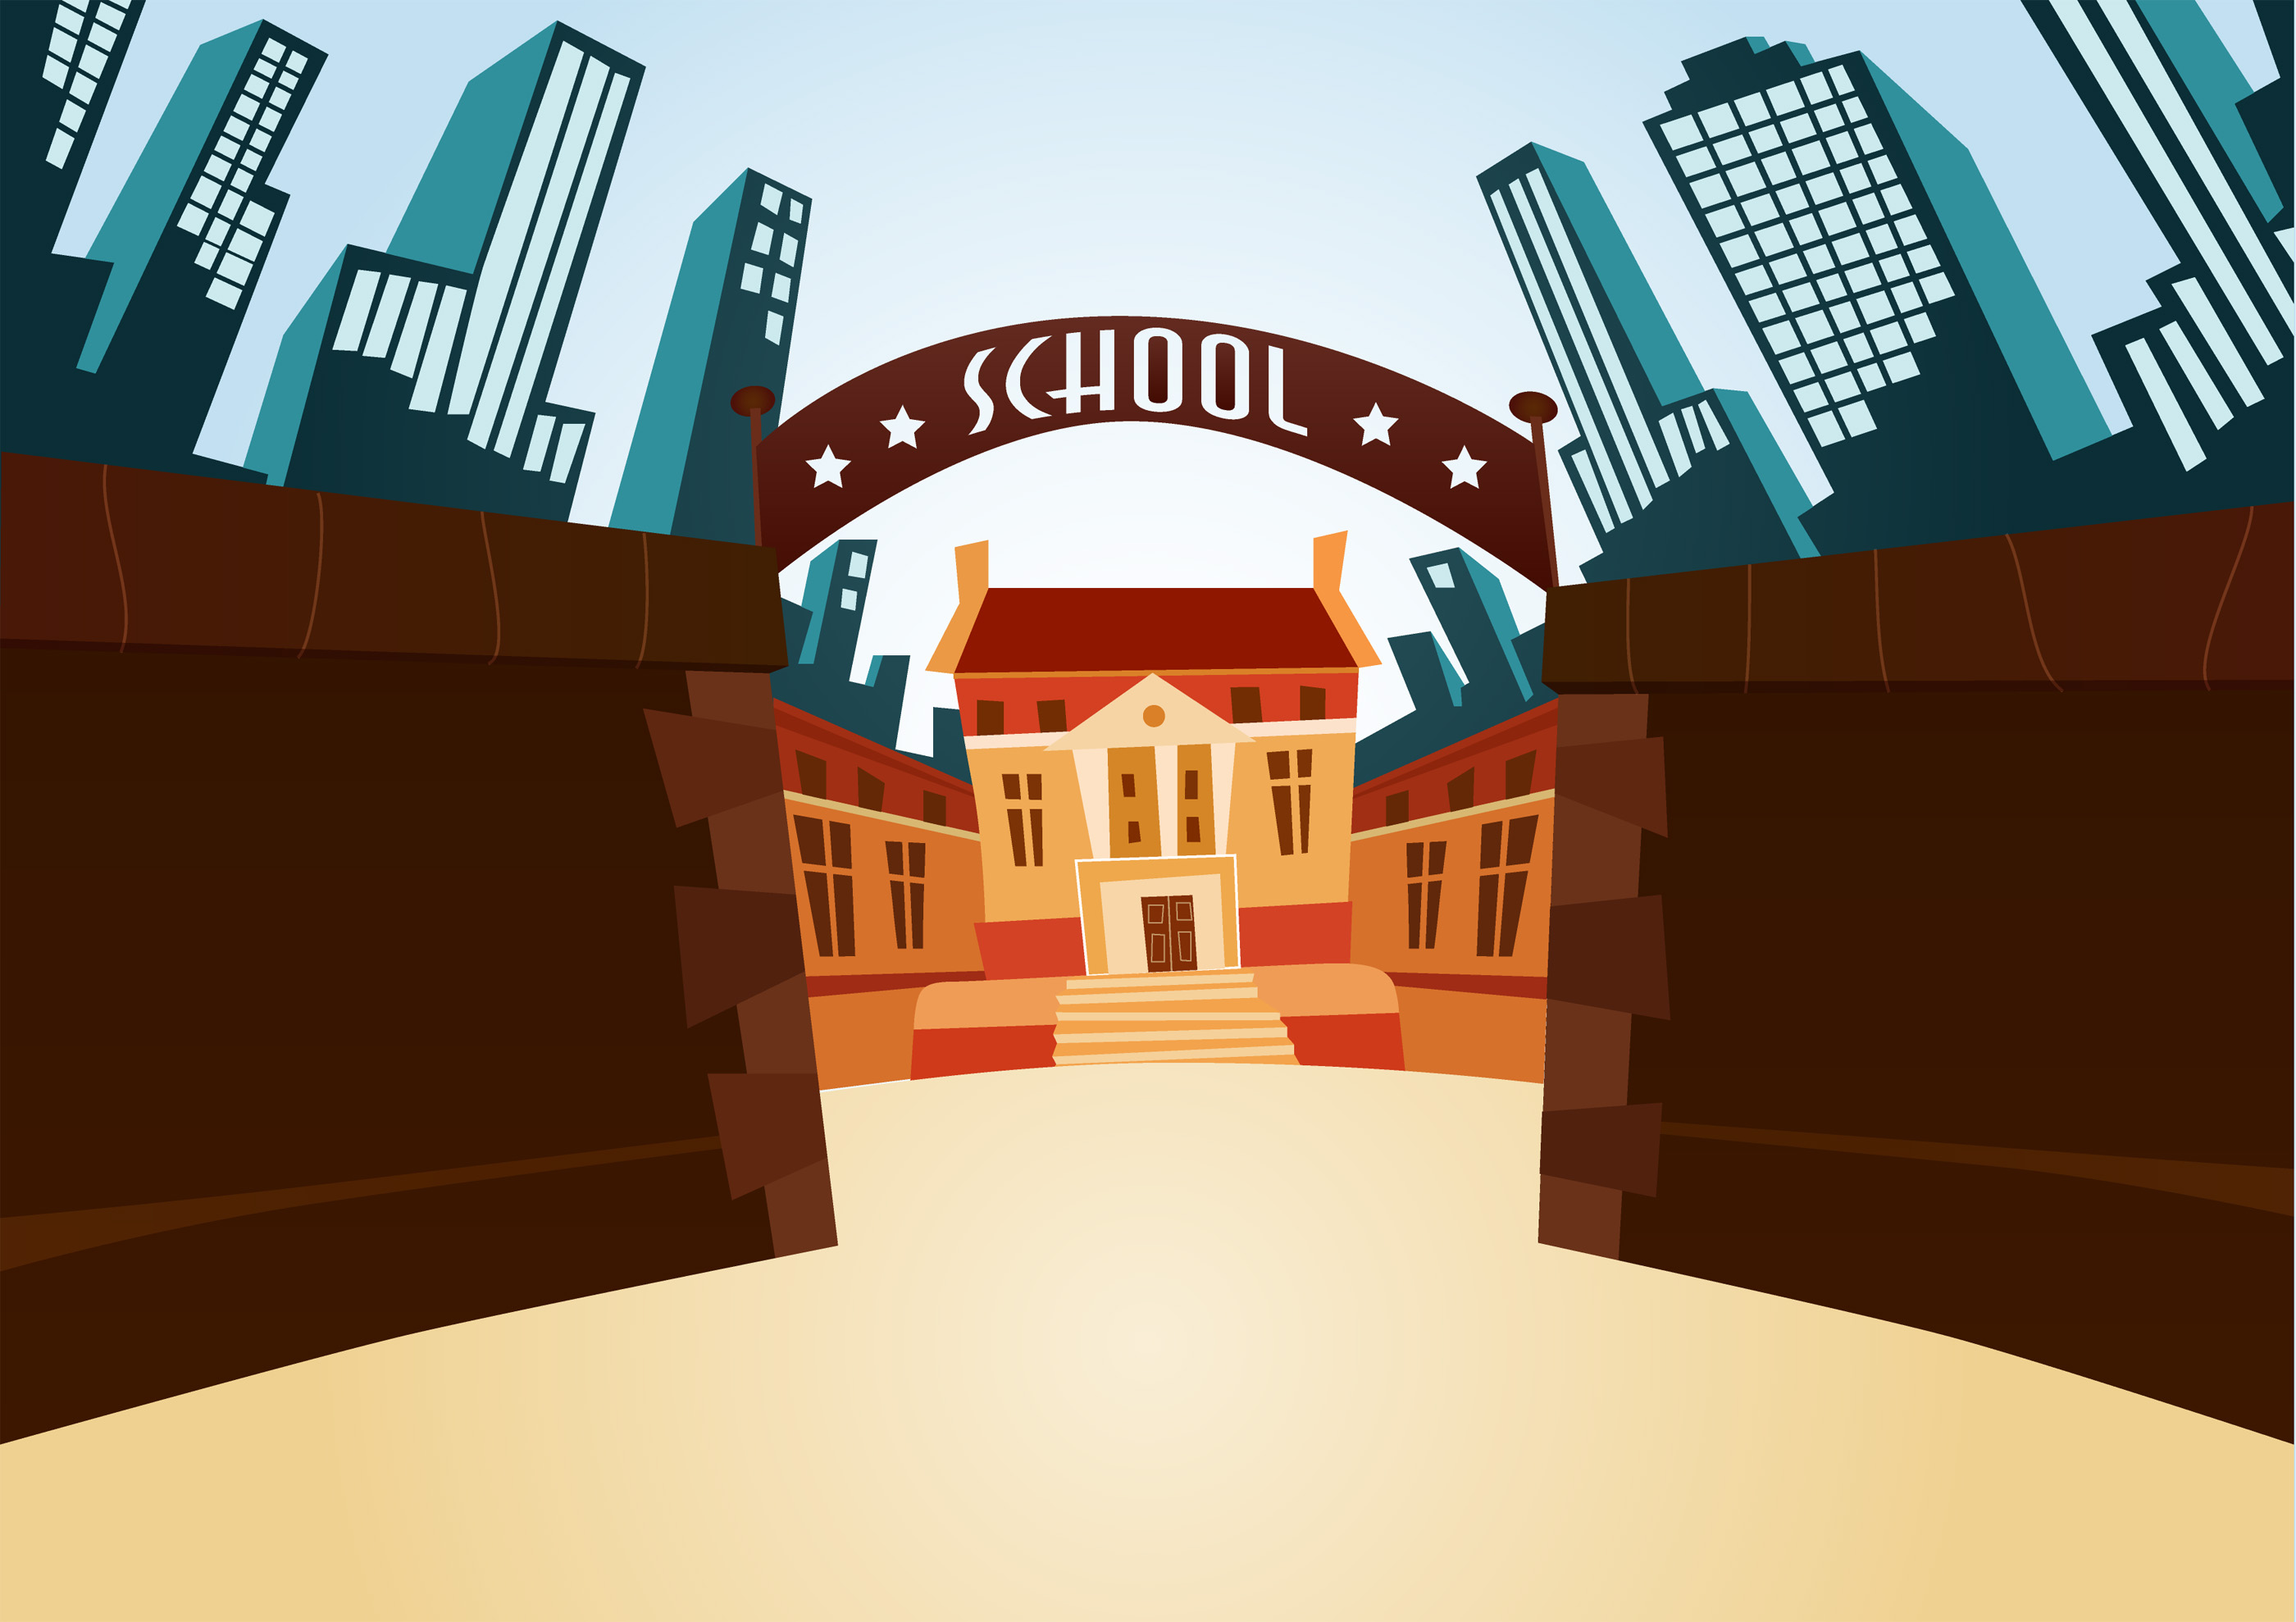 Illustration of school gates